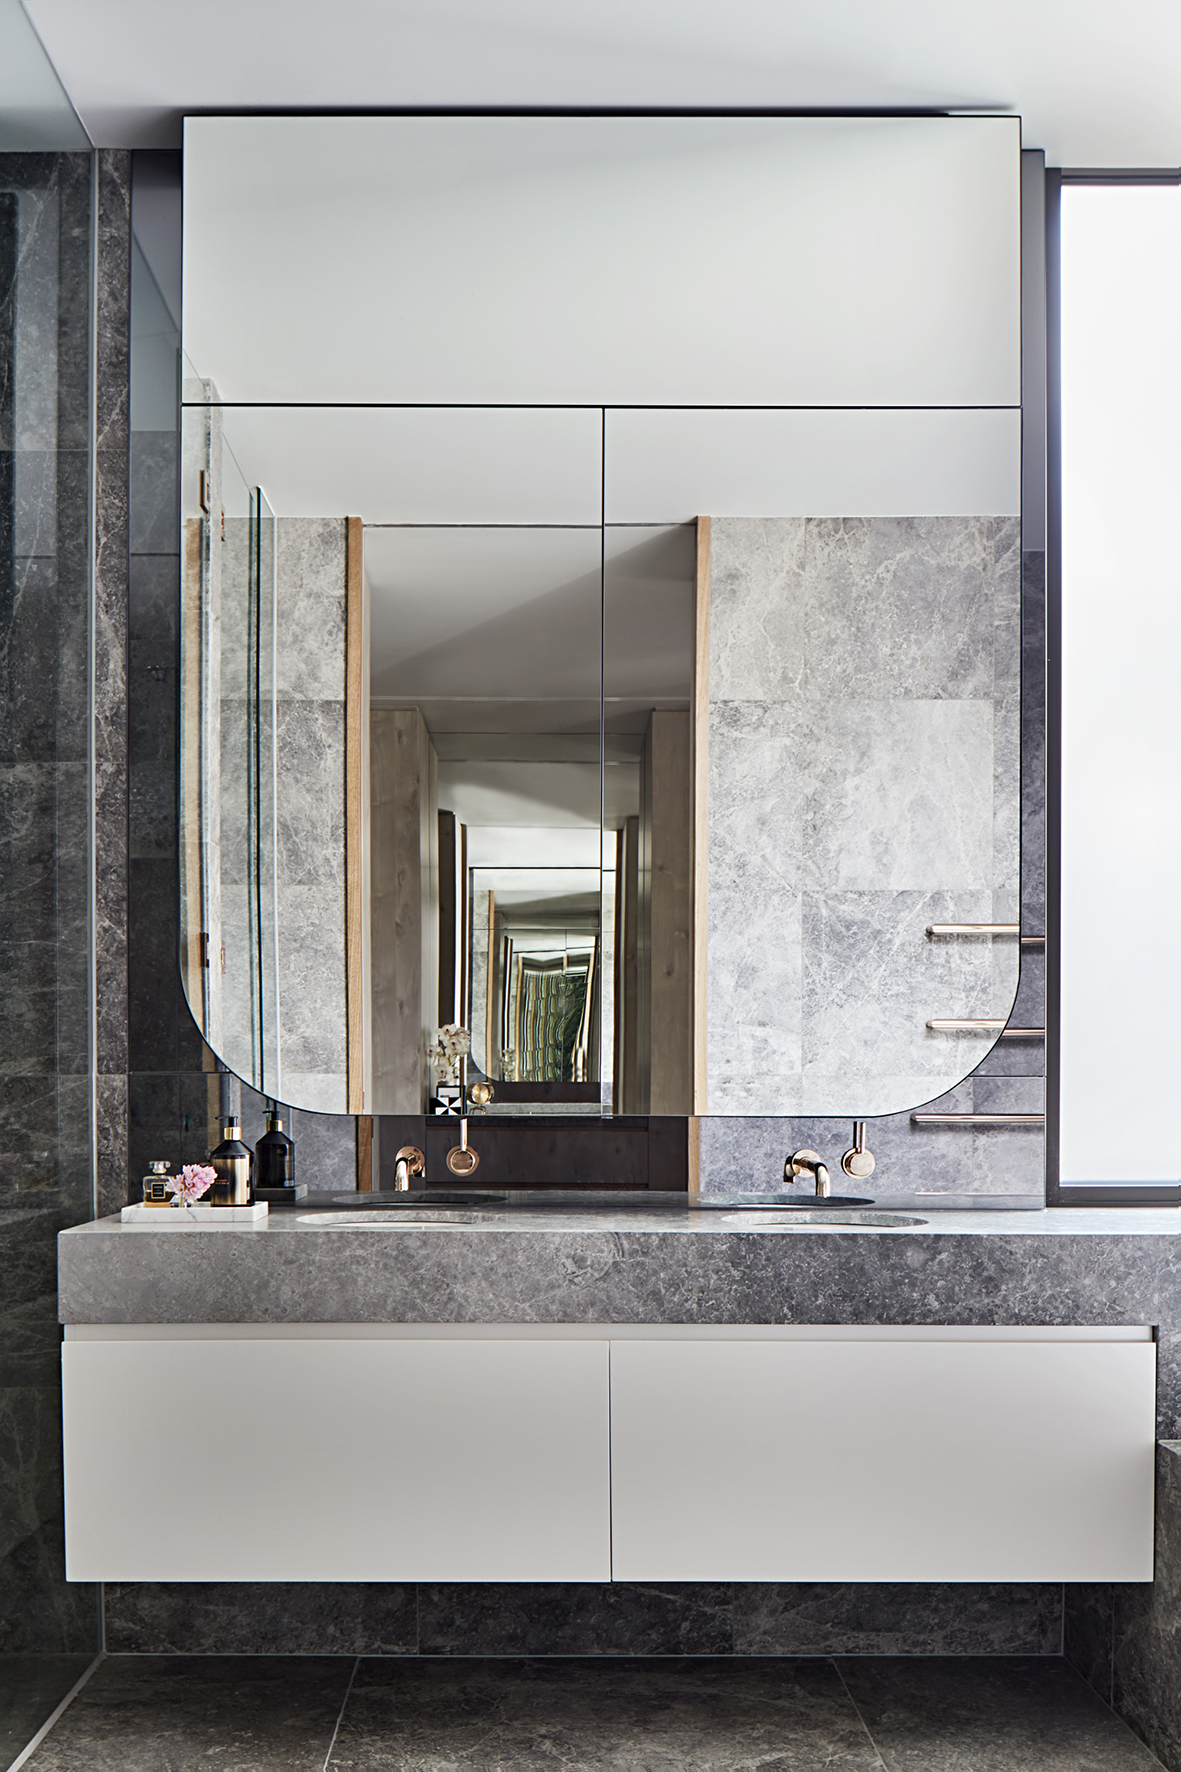 The Concrete Conceal House By Tecture Local Australian Bespoke Interiors & Contempoary Architecture Caulfield, Melbourne Image 31